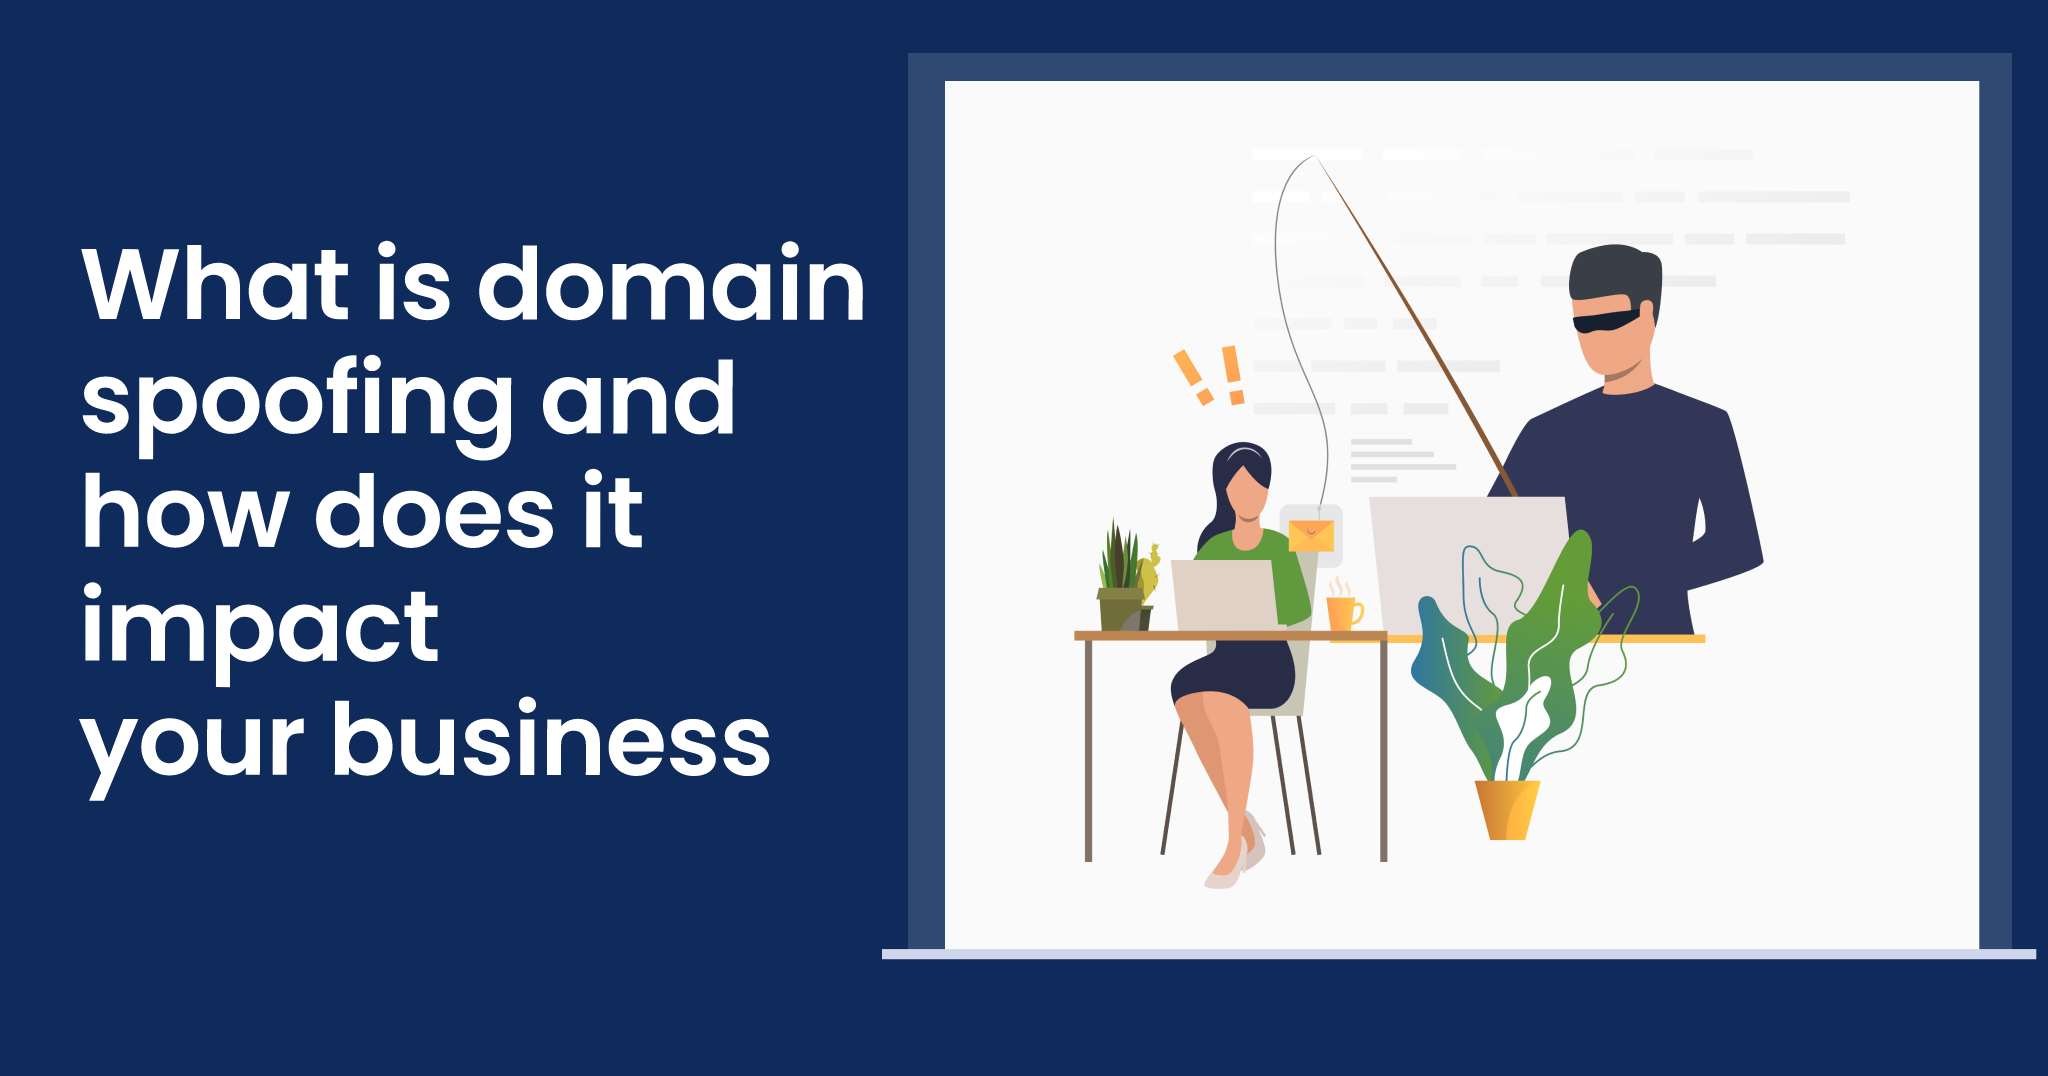 what is domain spoofing and how does it impact your business